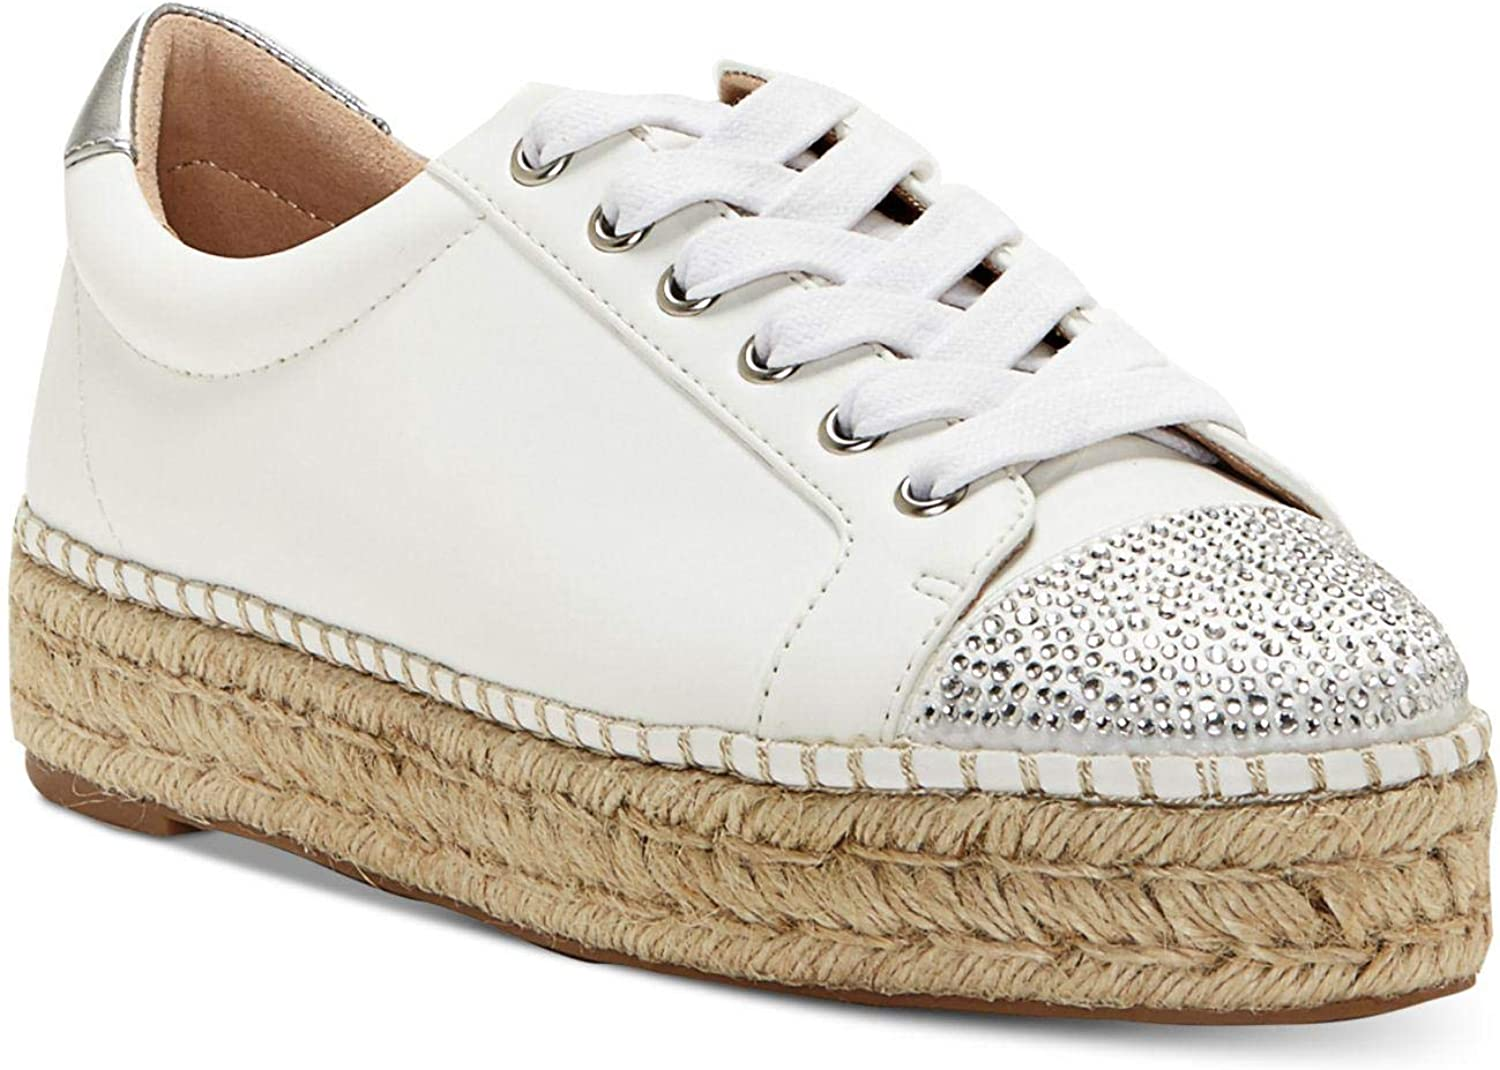 INC International Concepts Womens Eliza Leather Low Top Lace Up Fashion Sneak.